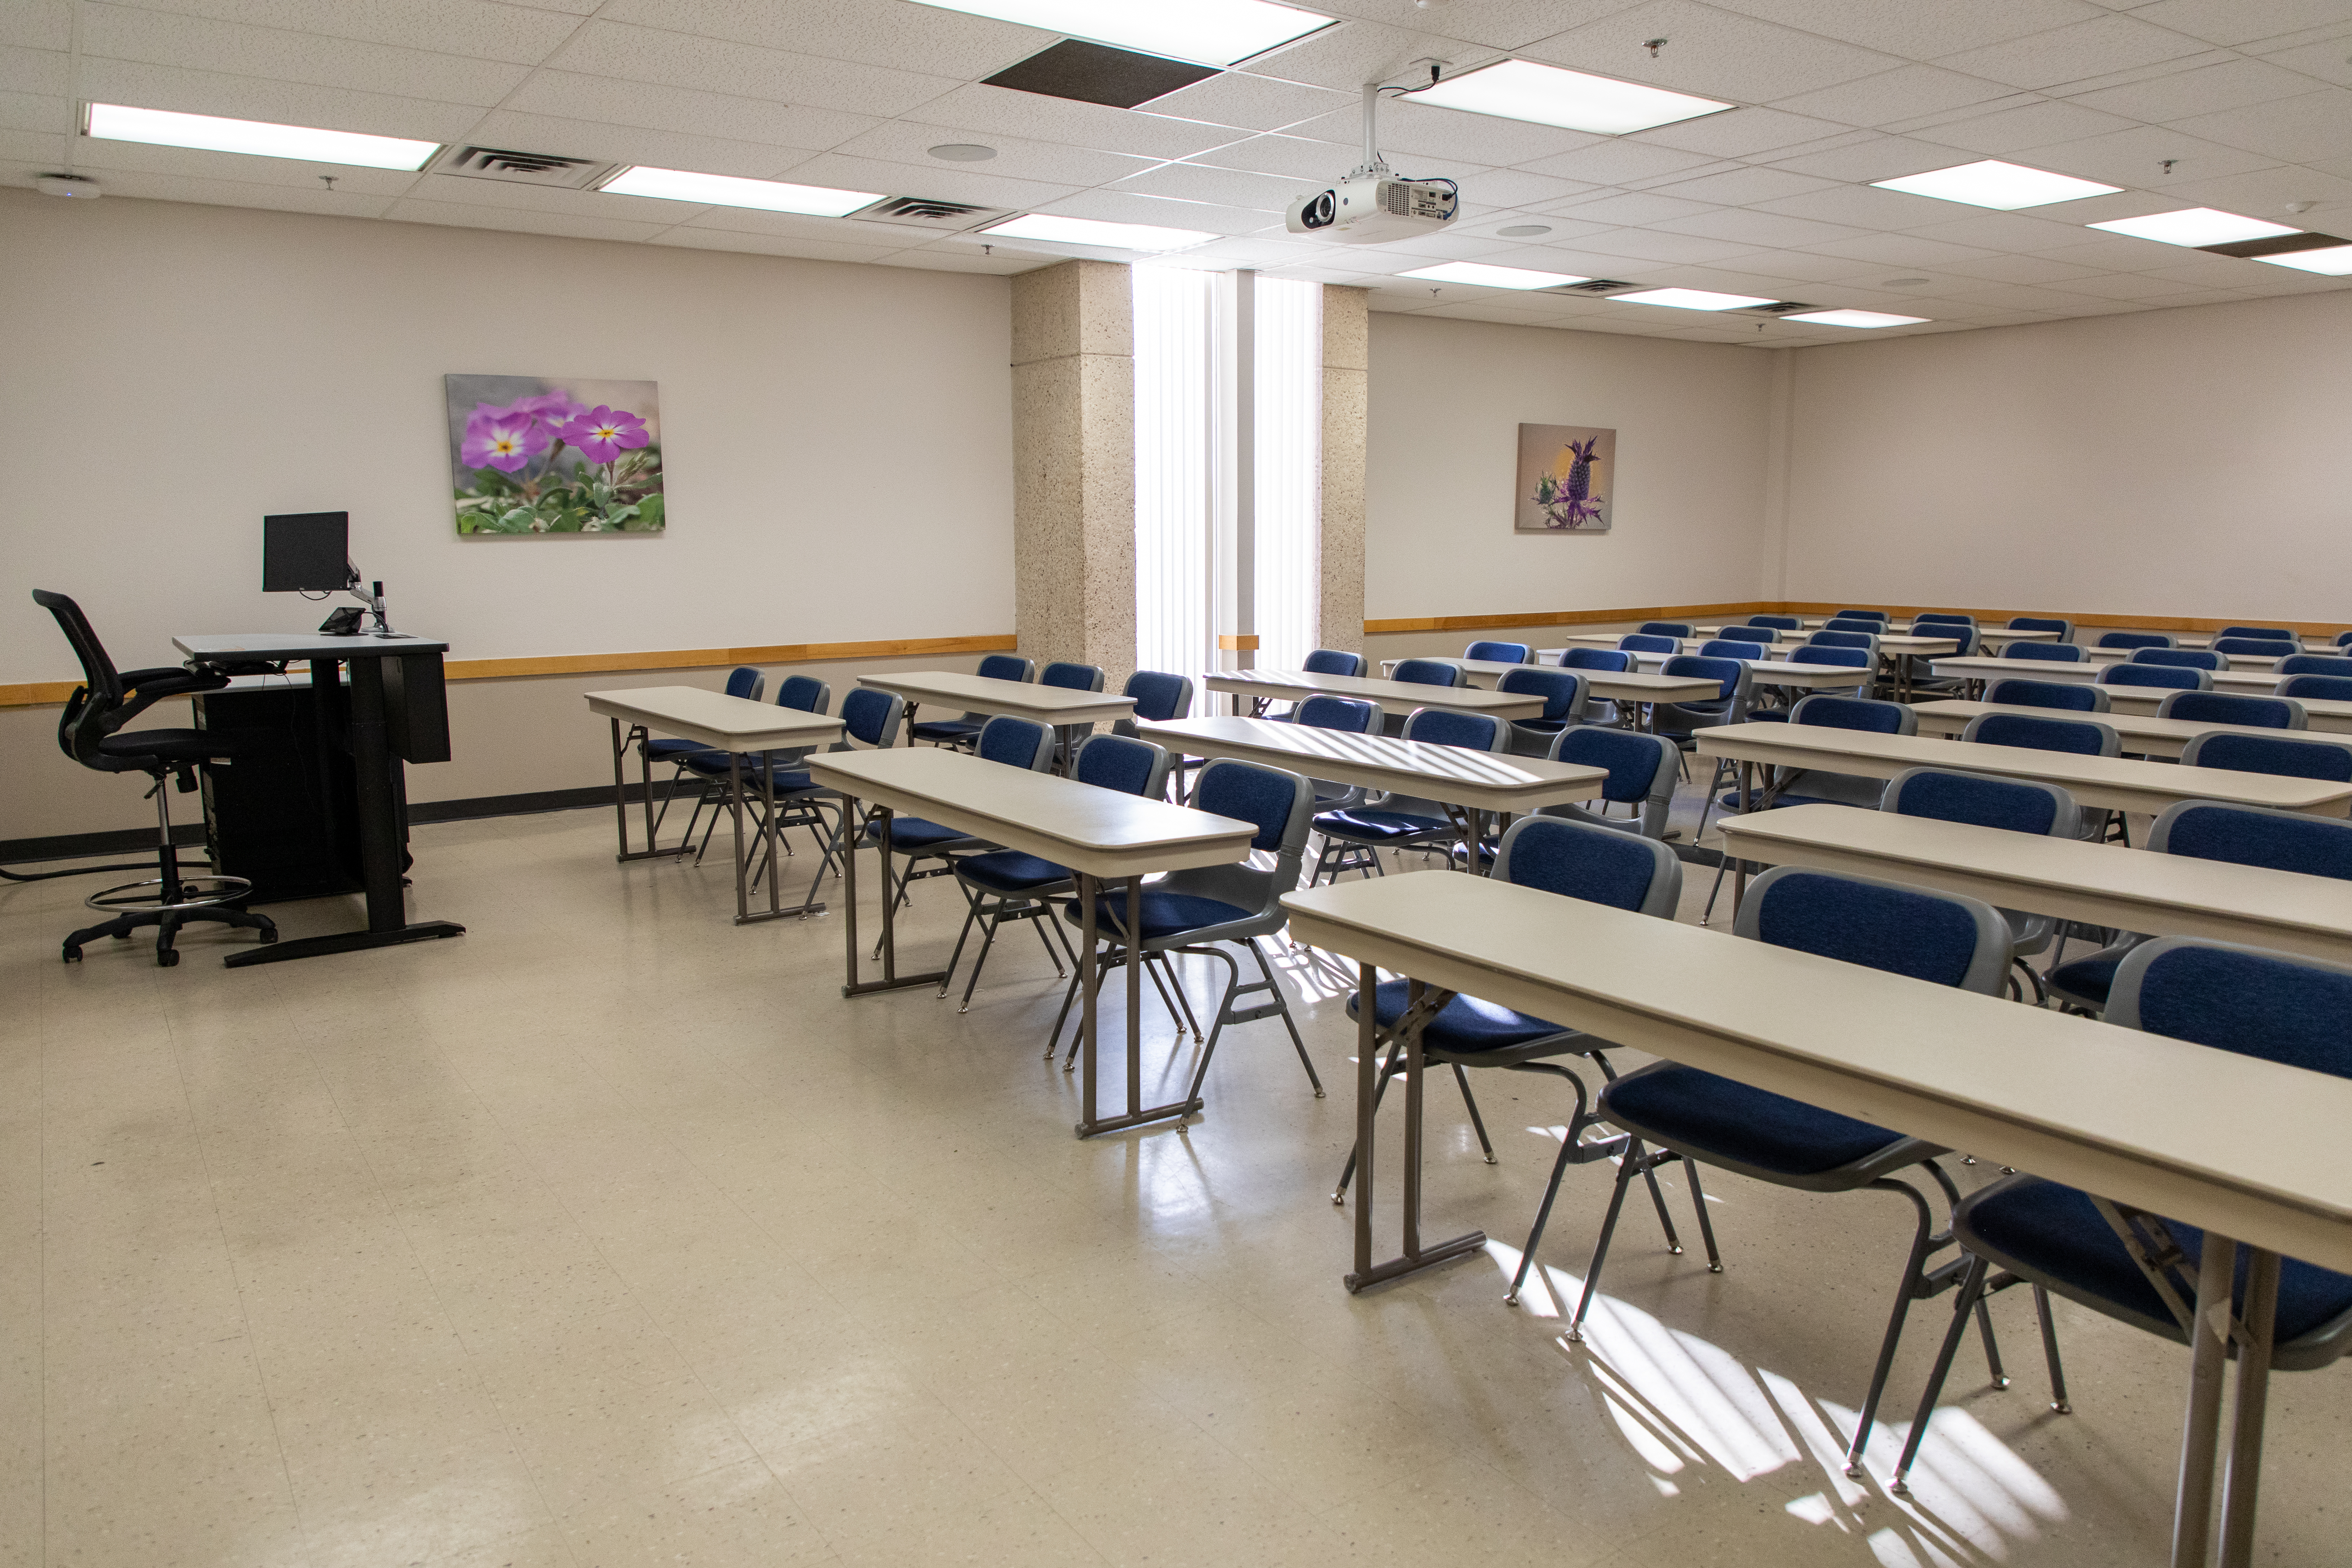 Large classroom with tables and chair facing forward.